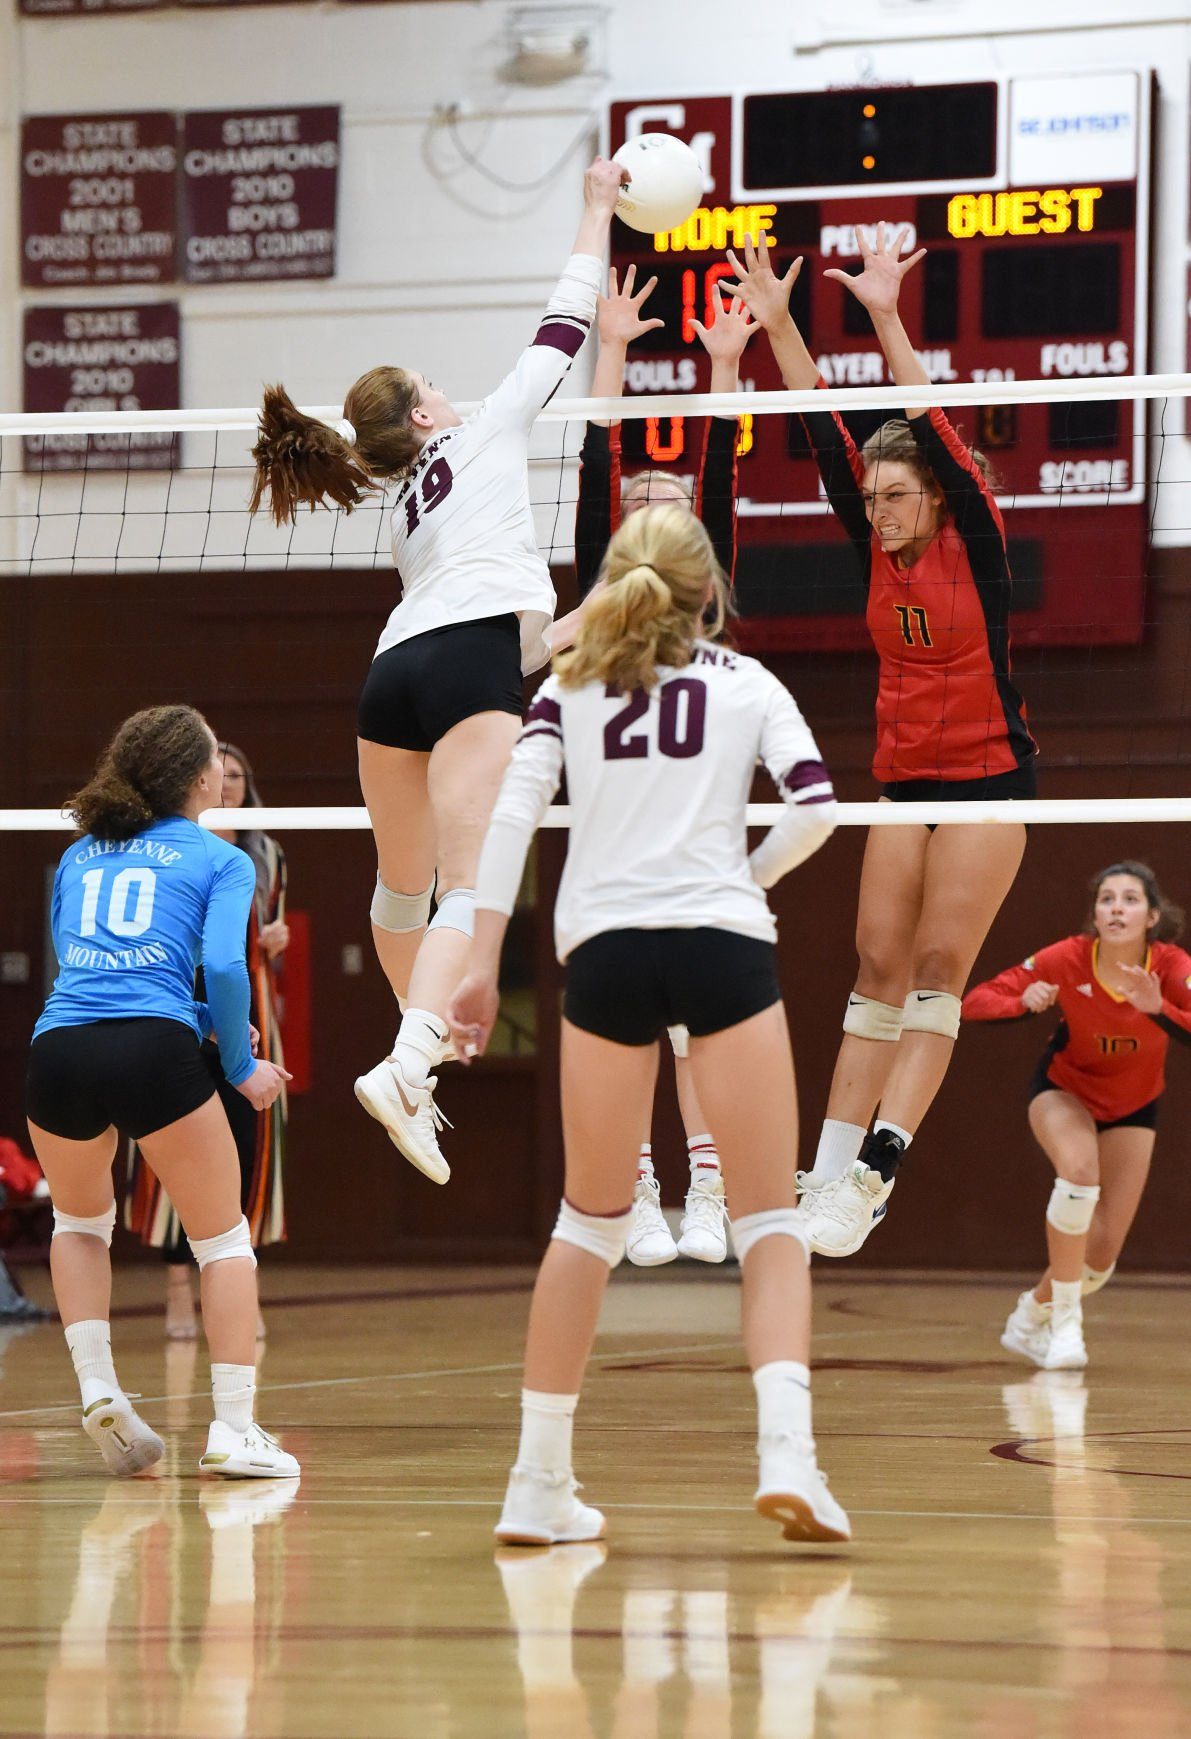 Cheyenne Mountain volleyball tops Coronado 3-2